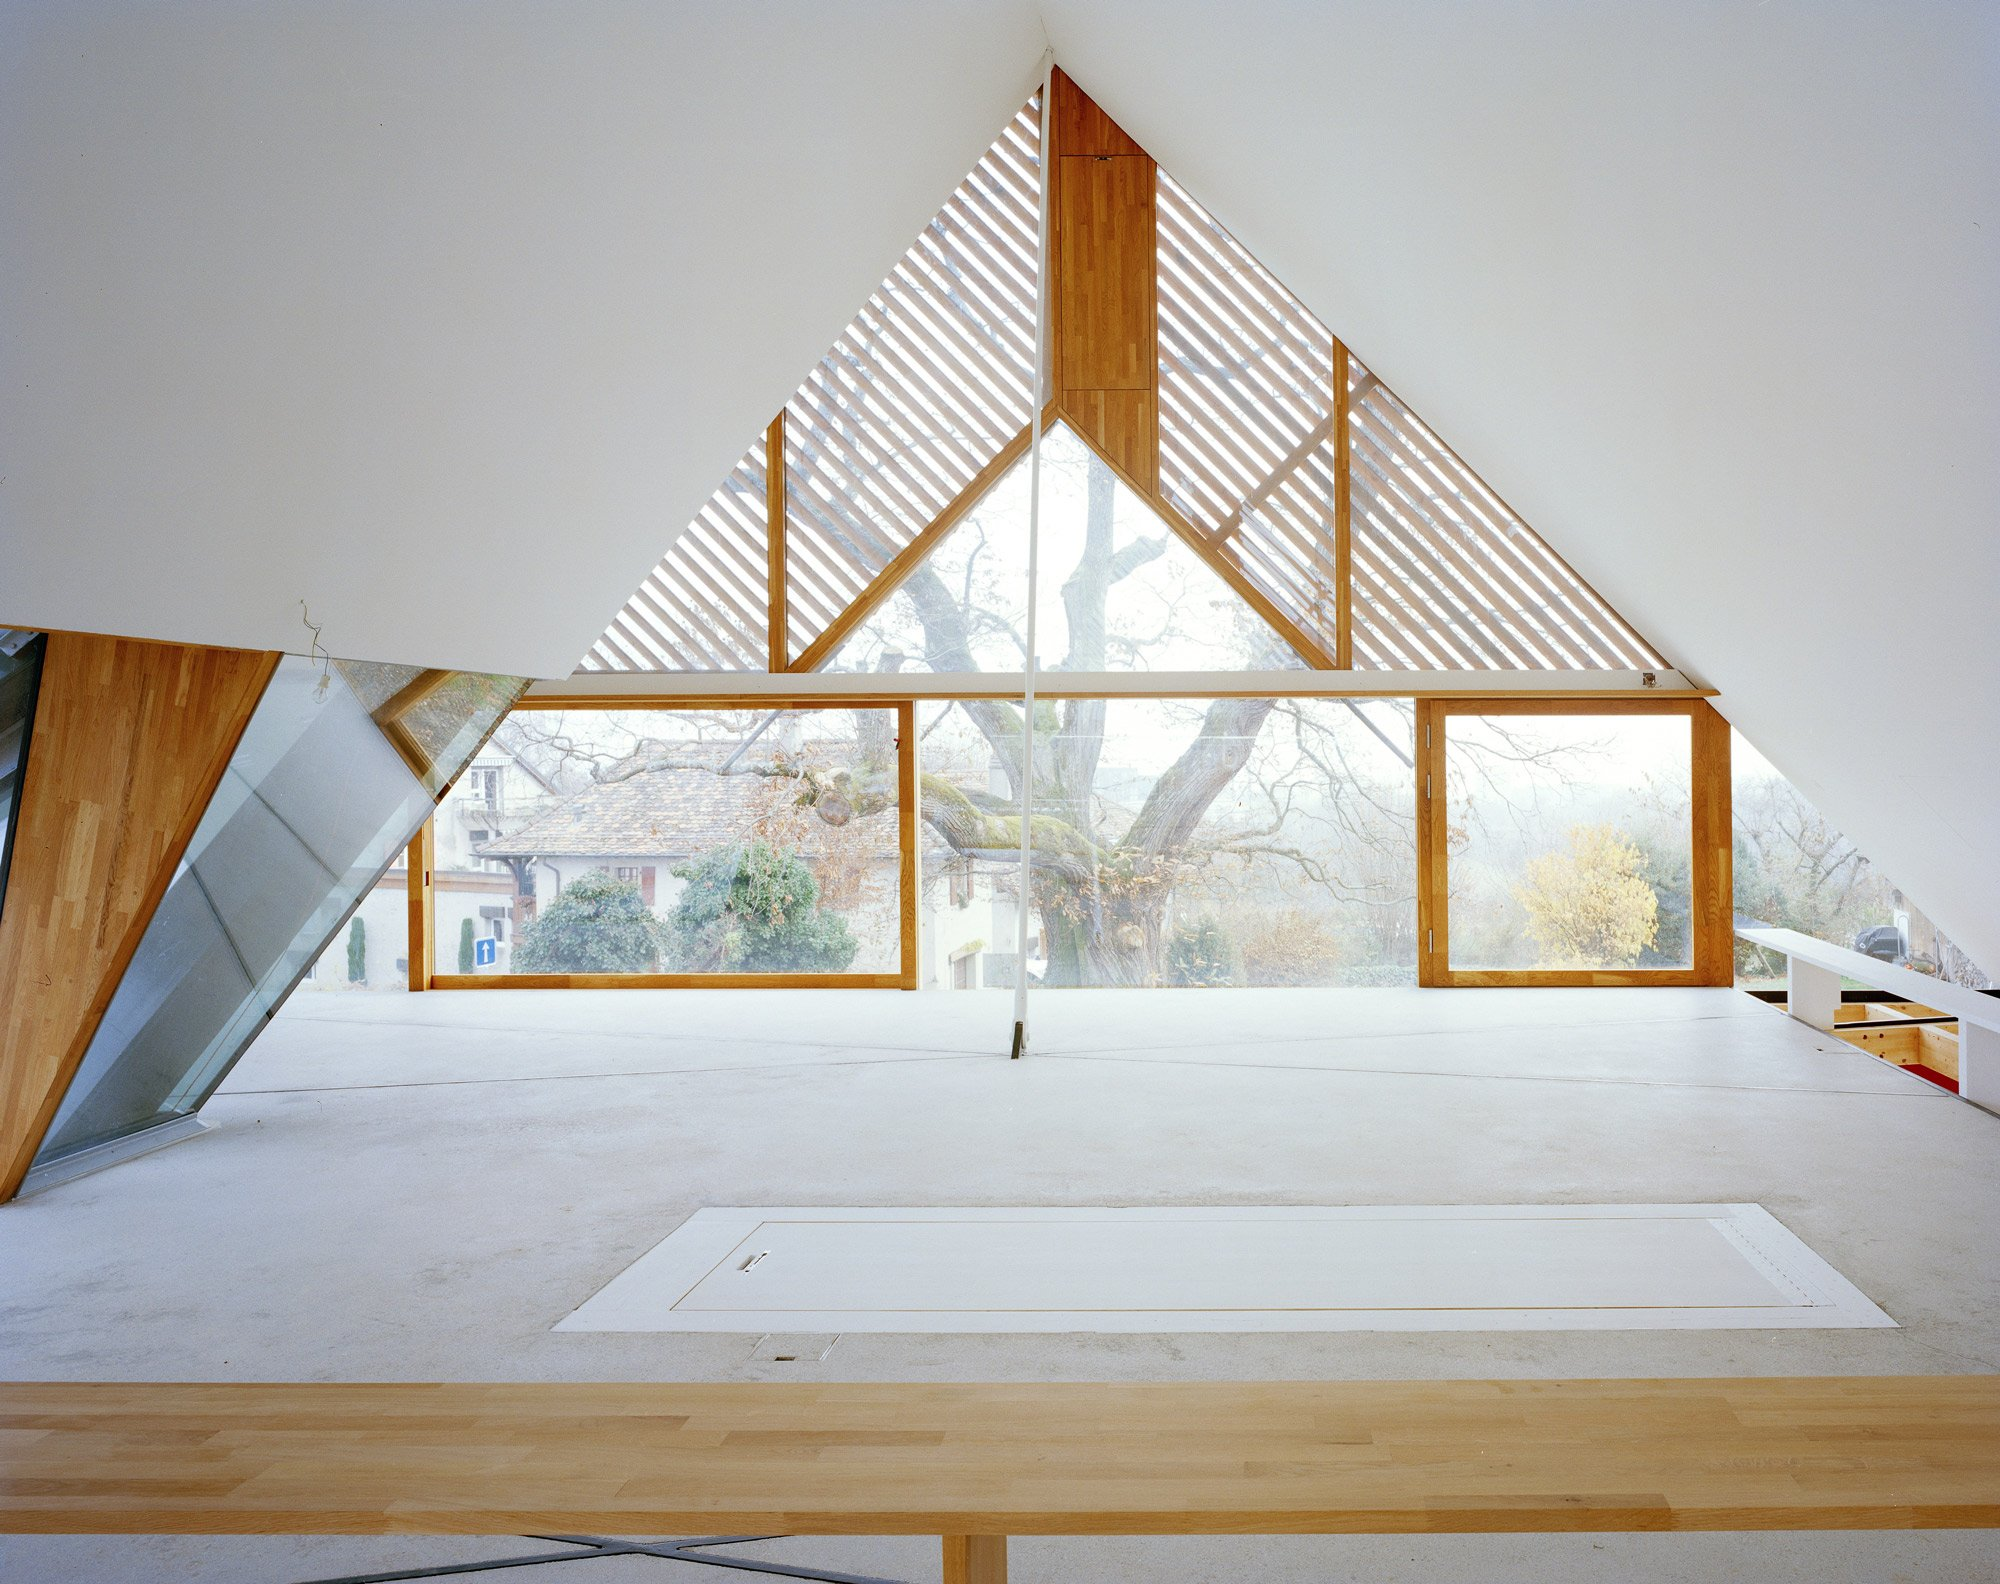 2 Houses in Chigny